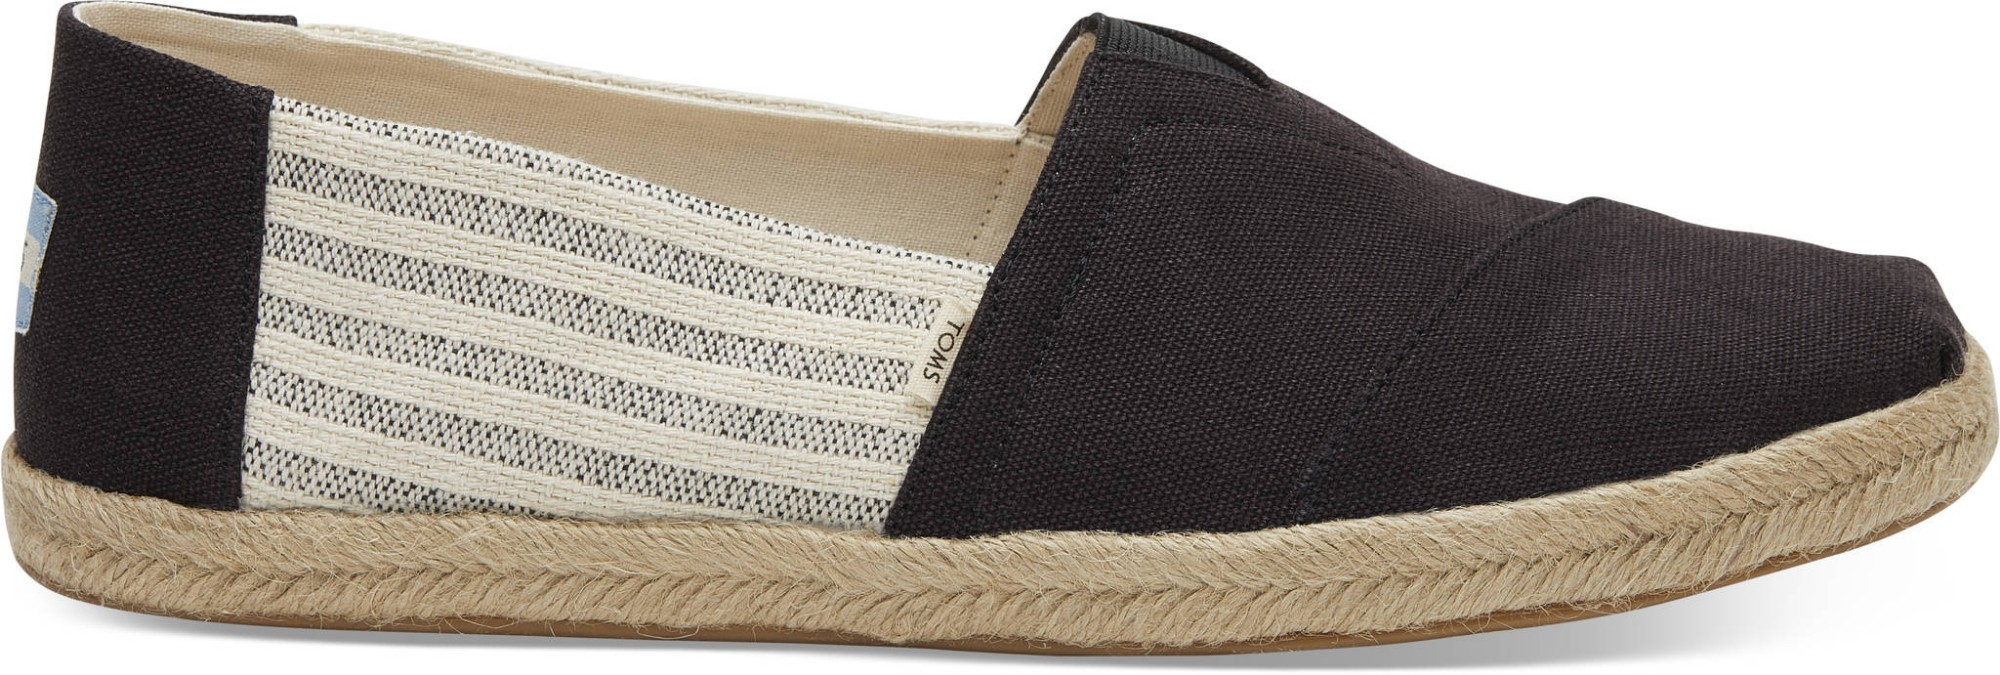 TOMS Canvas Ivy League on Rope Men's Alpargata Black 43,5